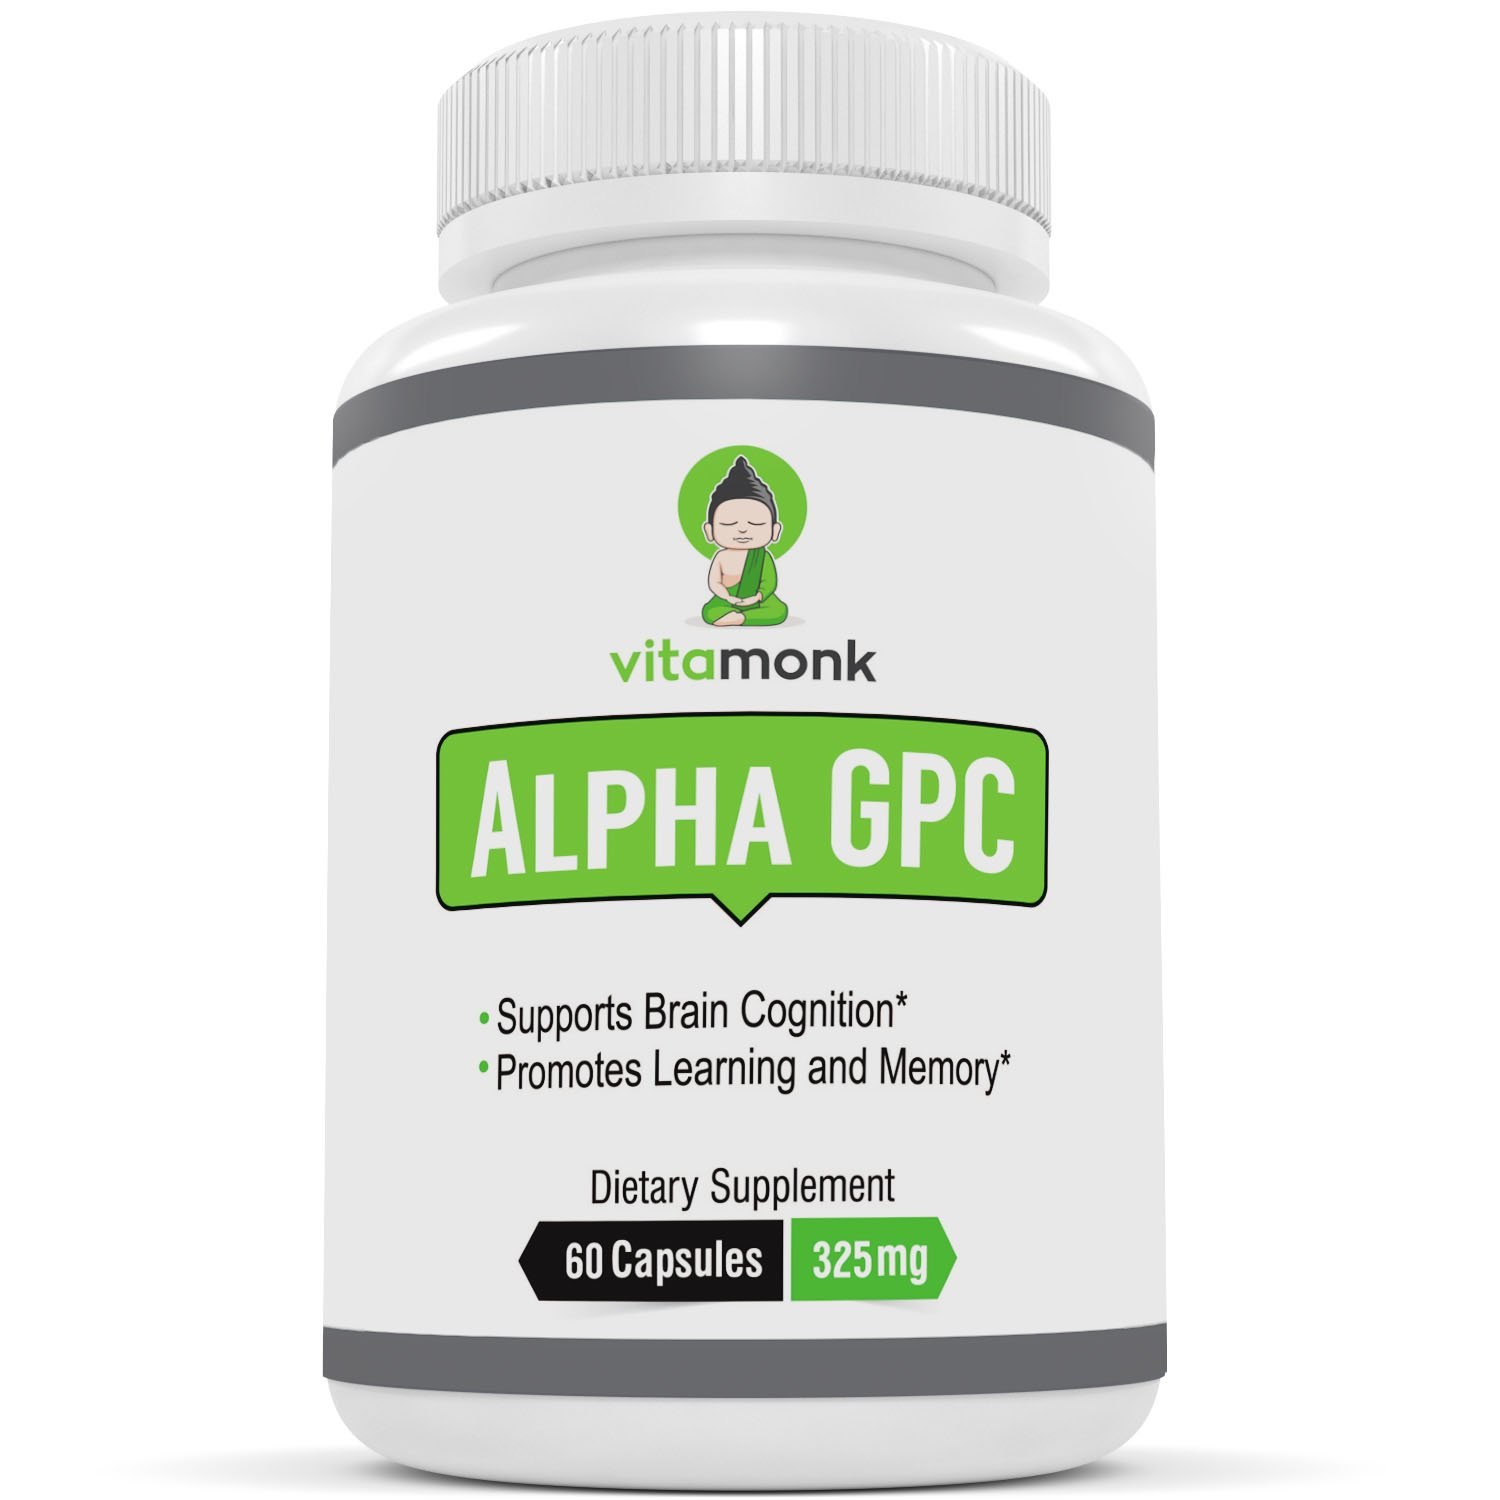 Alpha GPC Capsules by VitaMonkTM - Bioavailable Choline Supplement to Support Brain Cognition - 60 Alpha-GPC 325mg Capsules - No Artificial Fillers